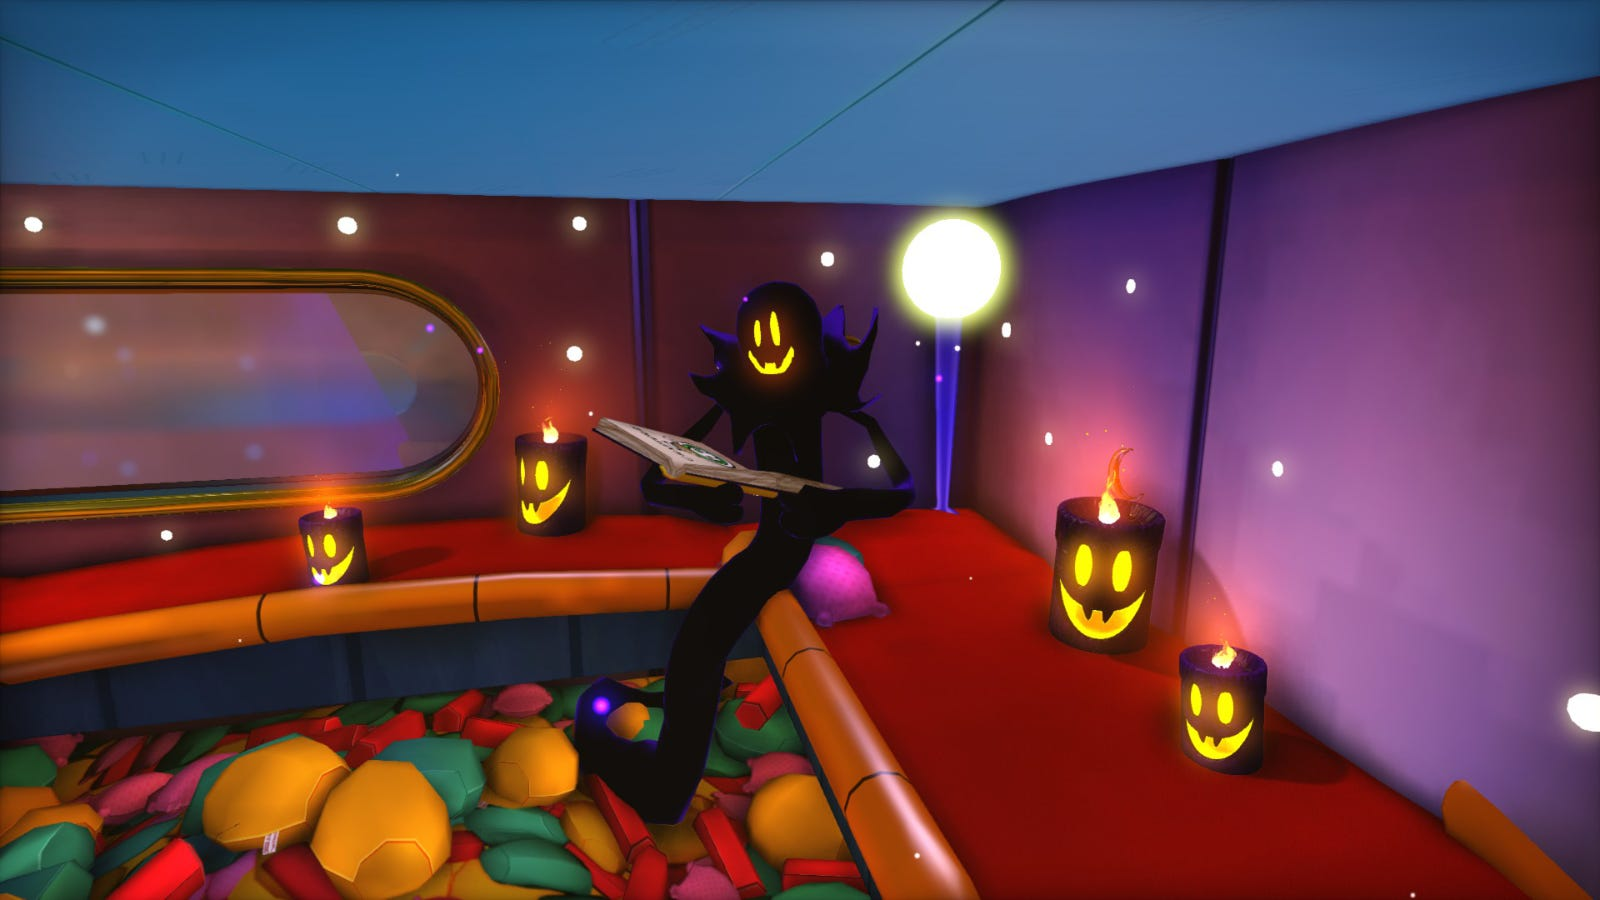 The Snatcher from 'A Hat in Time' sitting in a bedroom